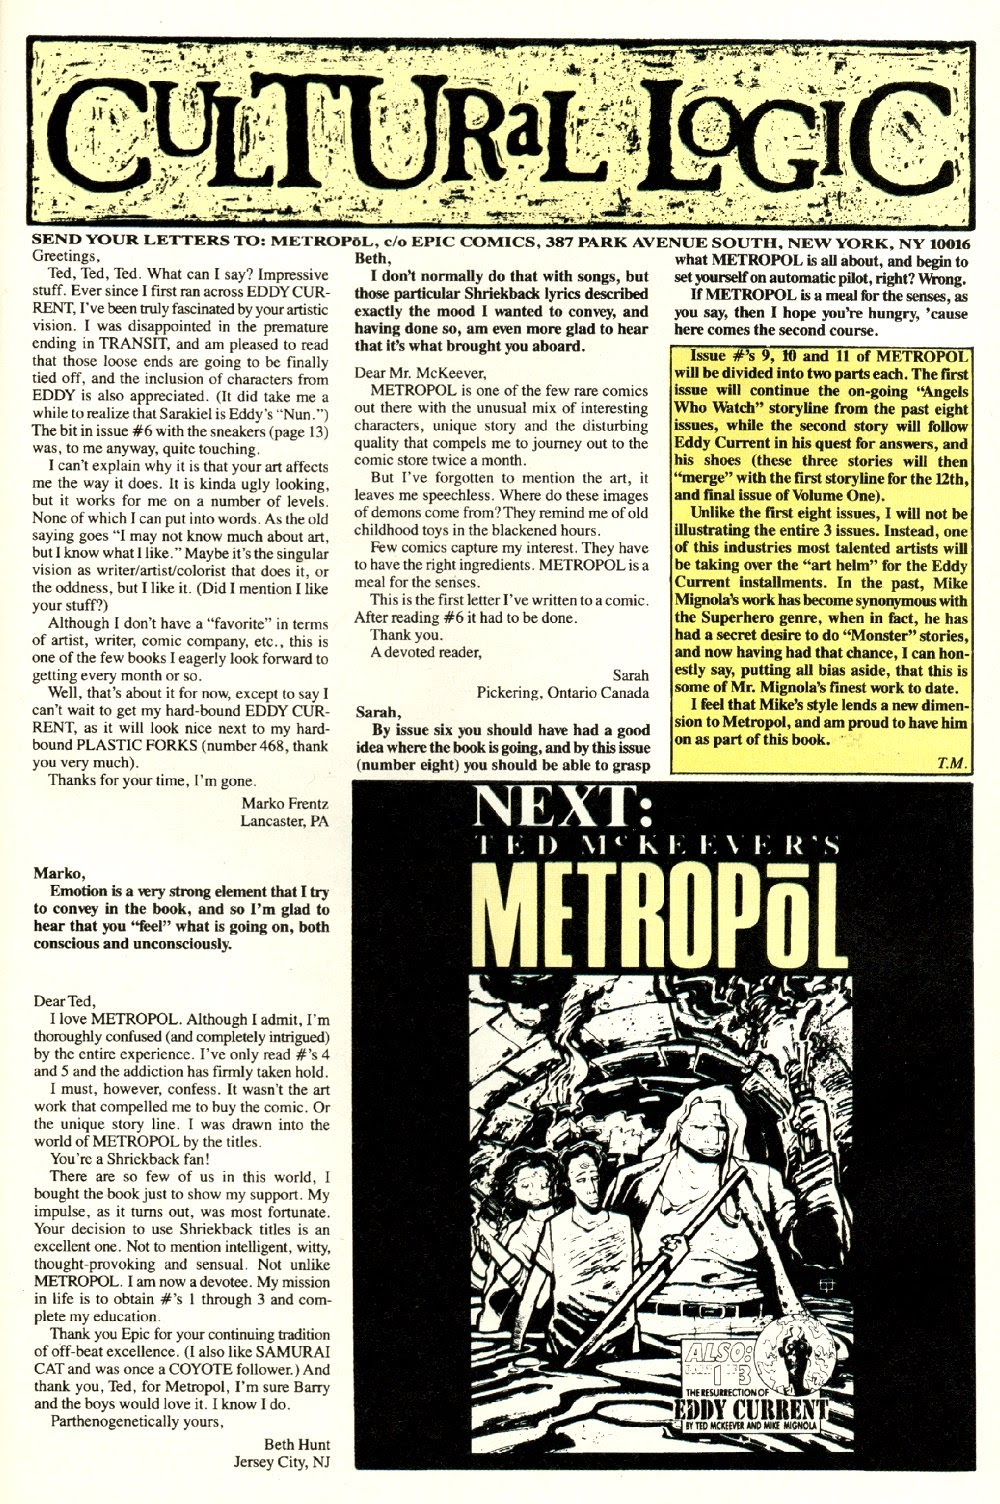 Read online Ted McKeever's Metropol comic -  Issue #8 - 31